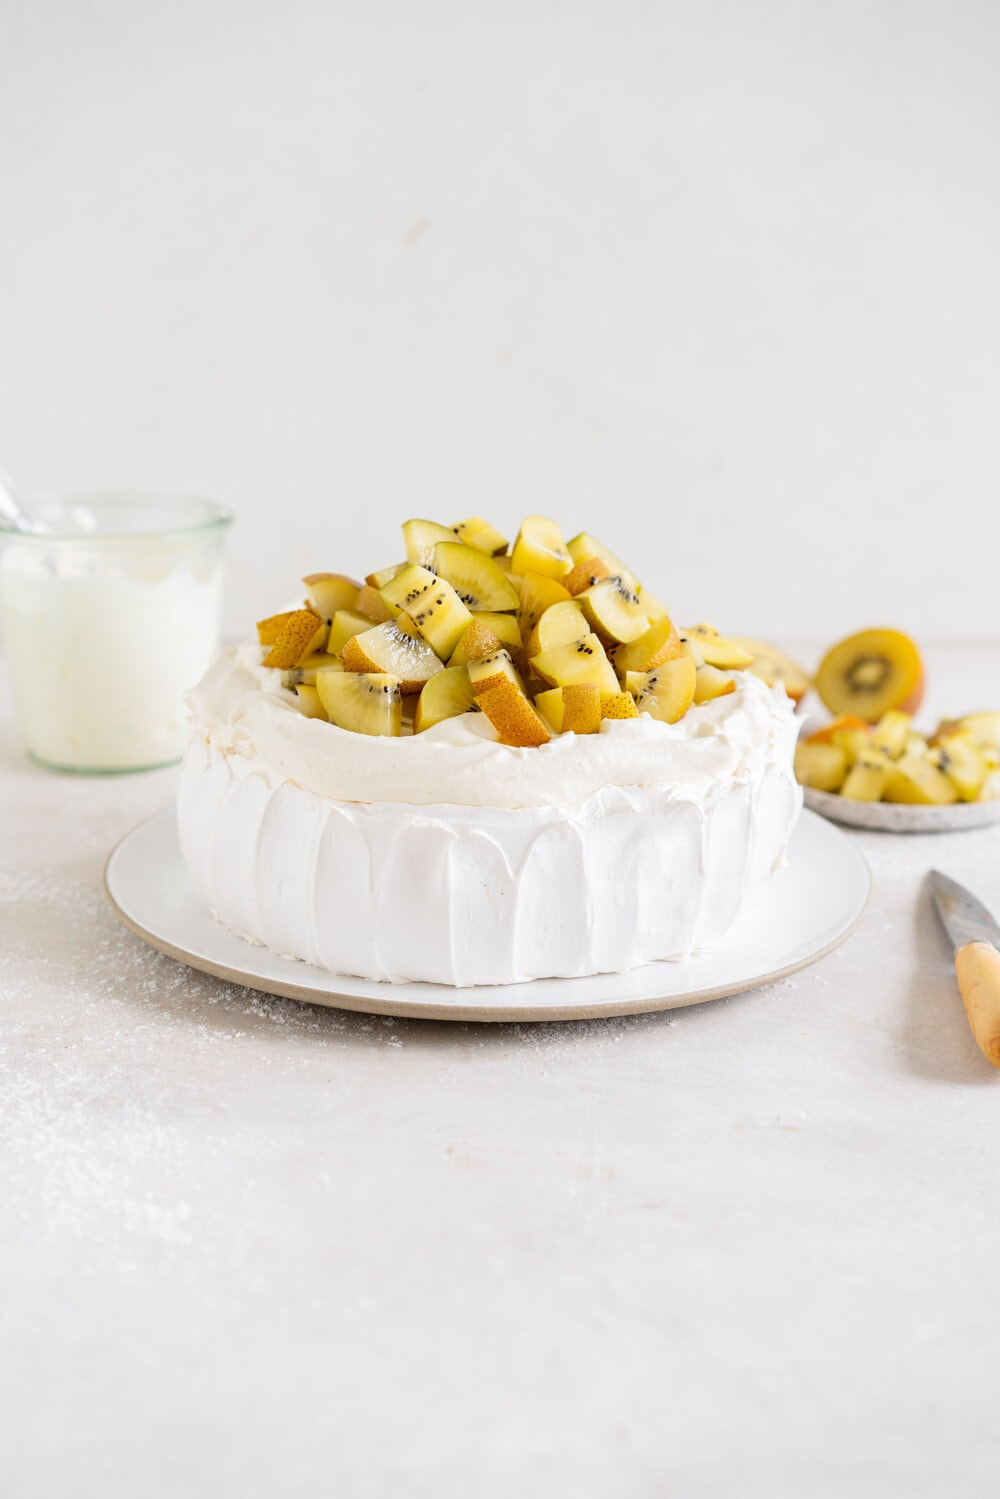 The most perfect, easy pavlova recipe. Using Swiss Meringue instead of the traditional French, this pavlova recipe is crispy on the outside and has a perfect, full, marshmallow center, and is much more stable so is resistant to humidity and changes in weather. It is easy to make and the perfect crowd pleaser. This is the most perfect year round dessert. Topped with Manuka Honey whipped cream and golden kiwifruit, this is a New Zealand classic.